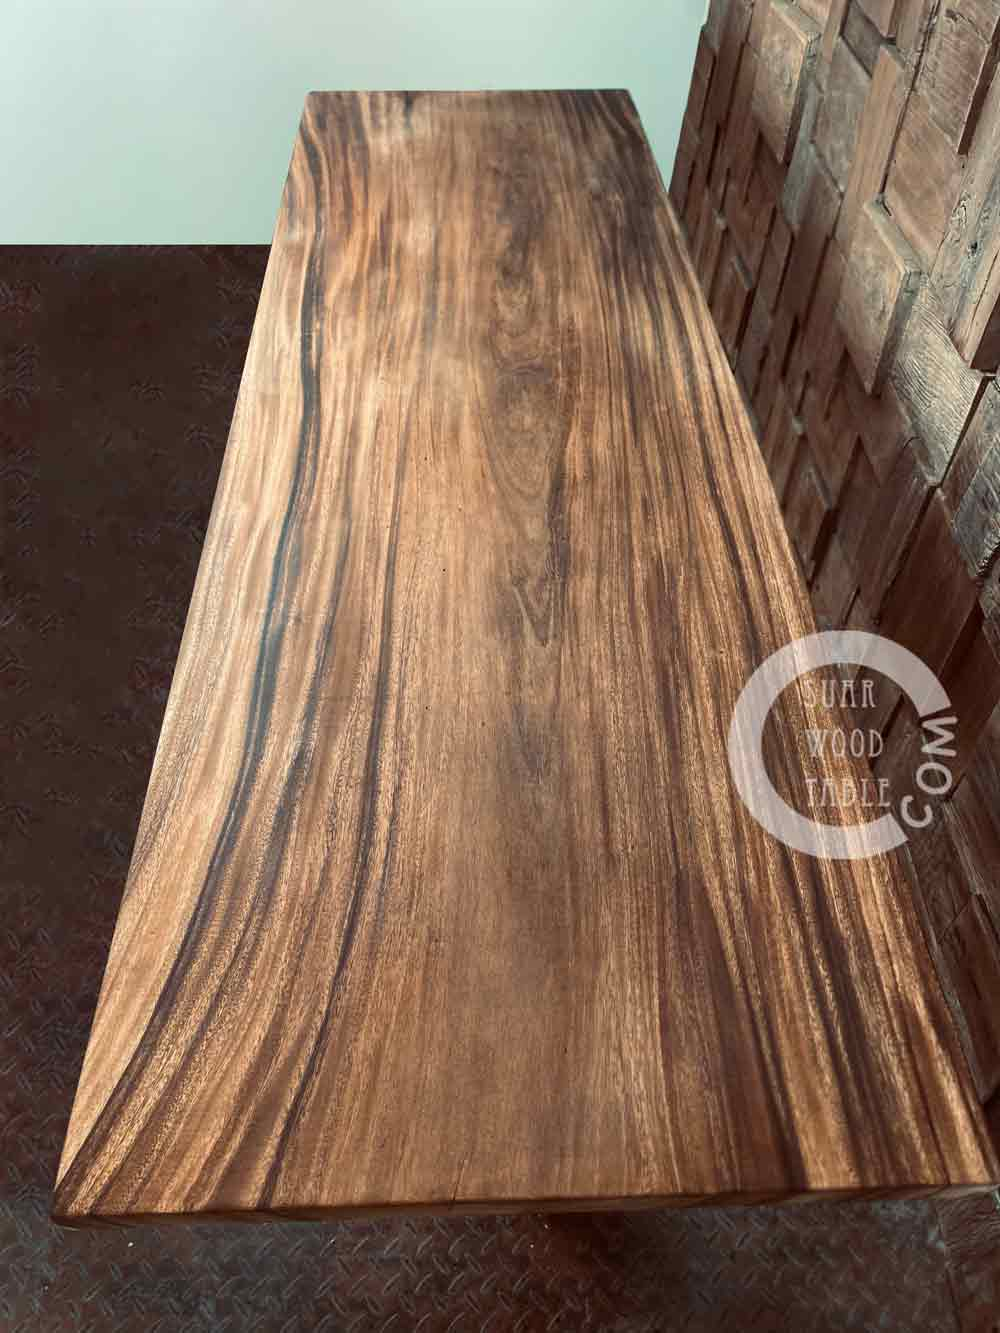 south american walnut wooden study table top